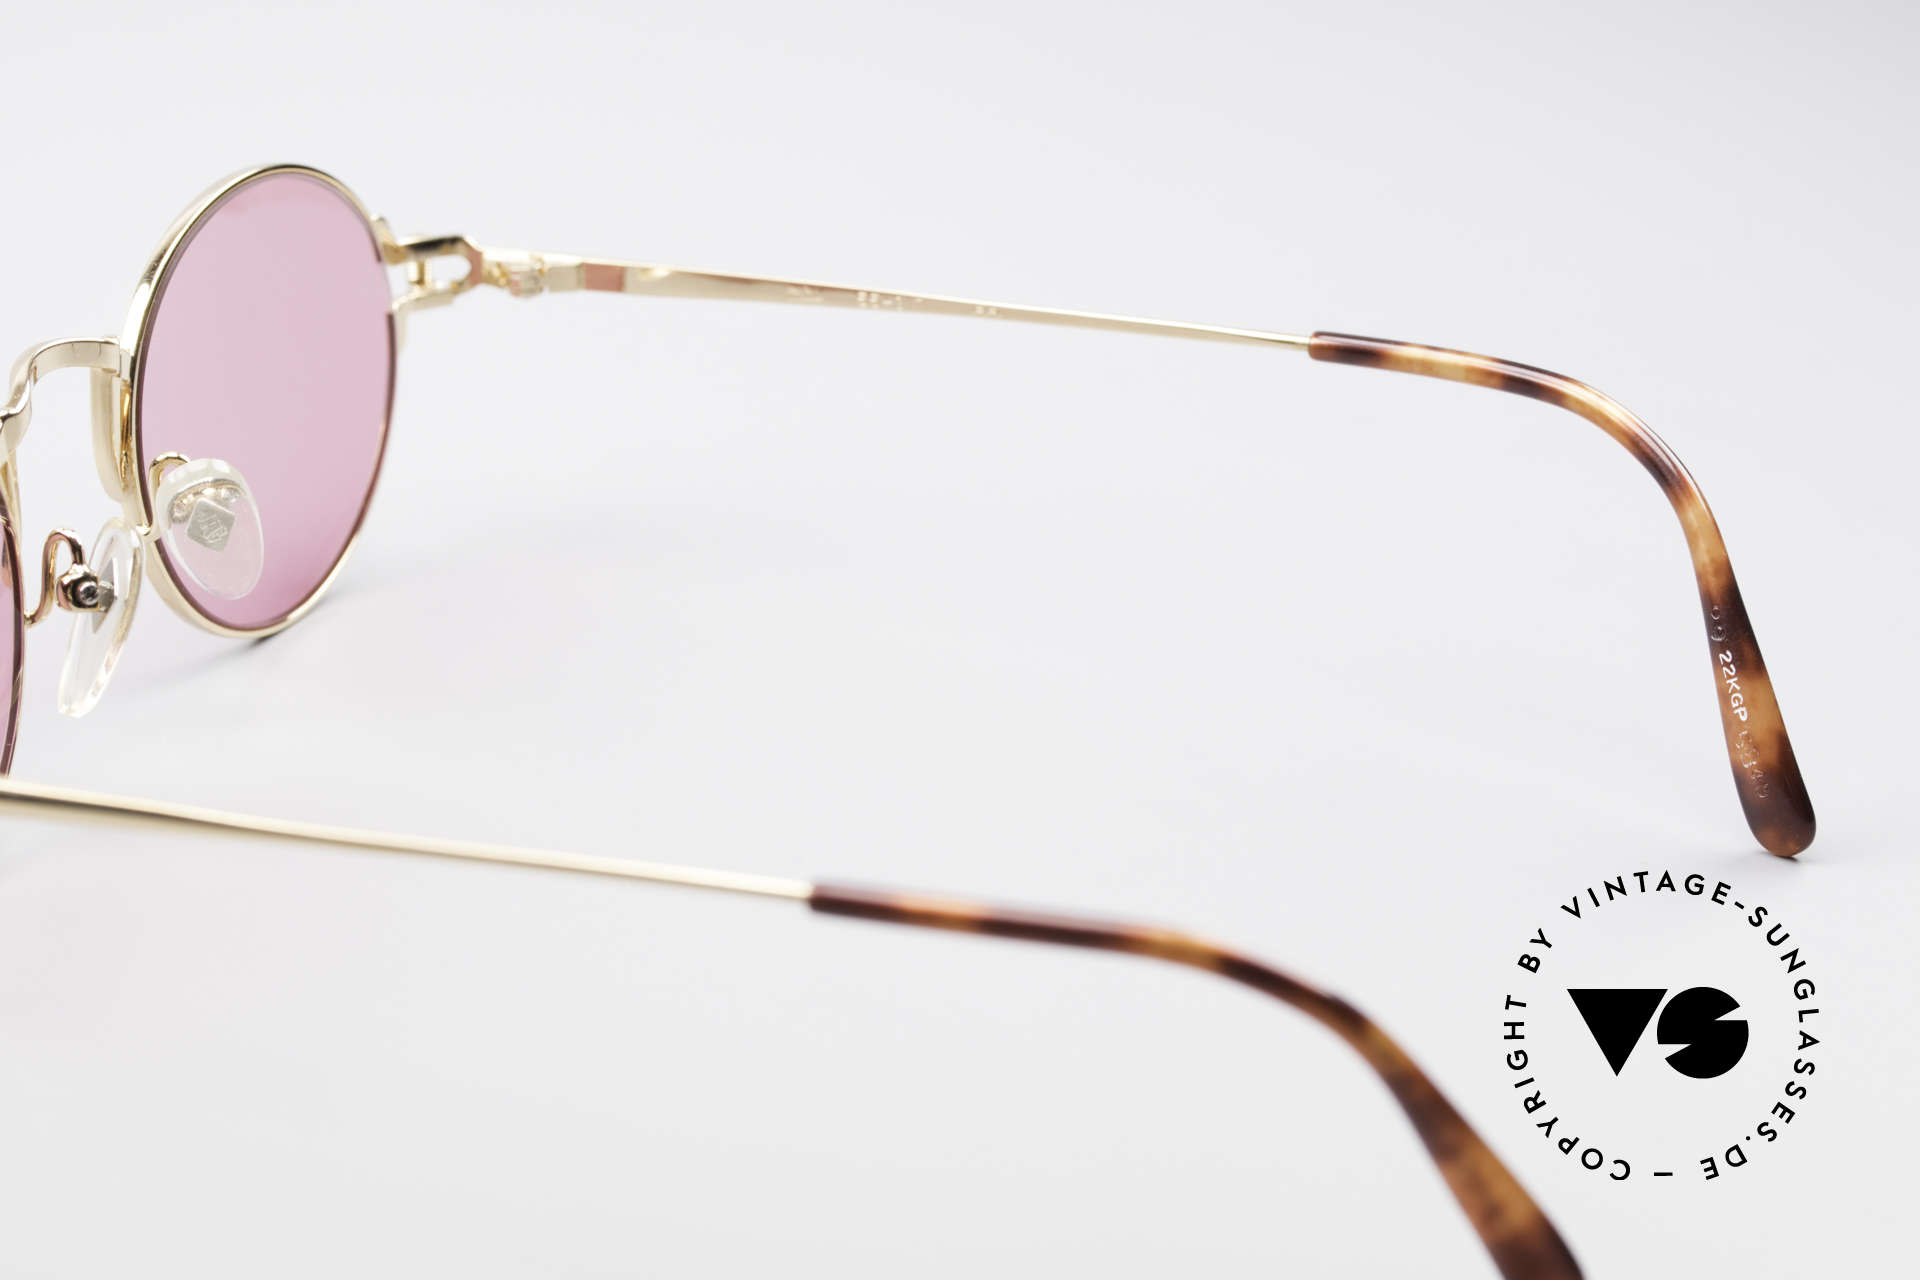 Jean Paul Gaultier 55-3171 Small Round Sunglasses, NO retro eyewear; a rare ORIGINAL with fancy lenses, Made for Men and Women